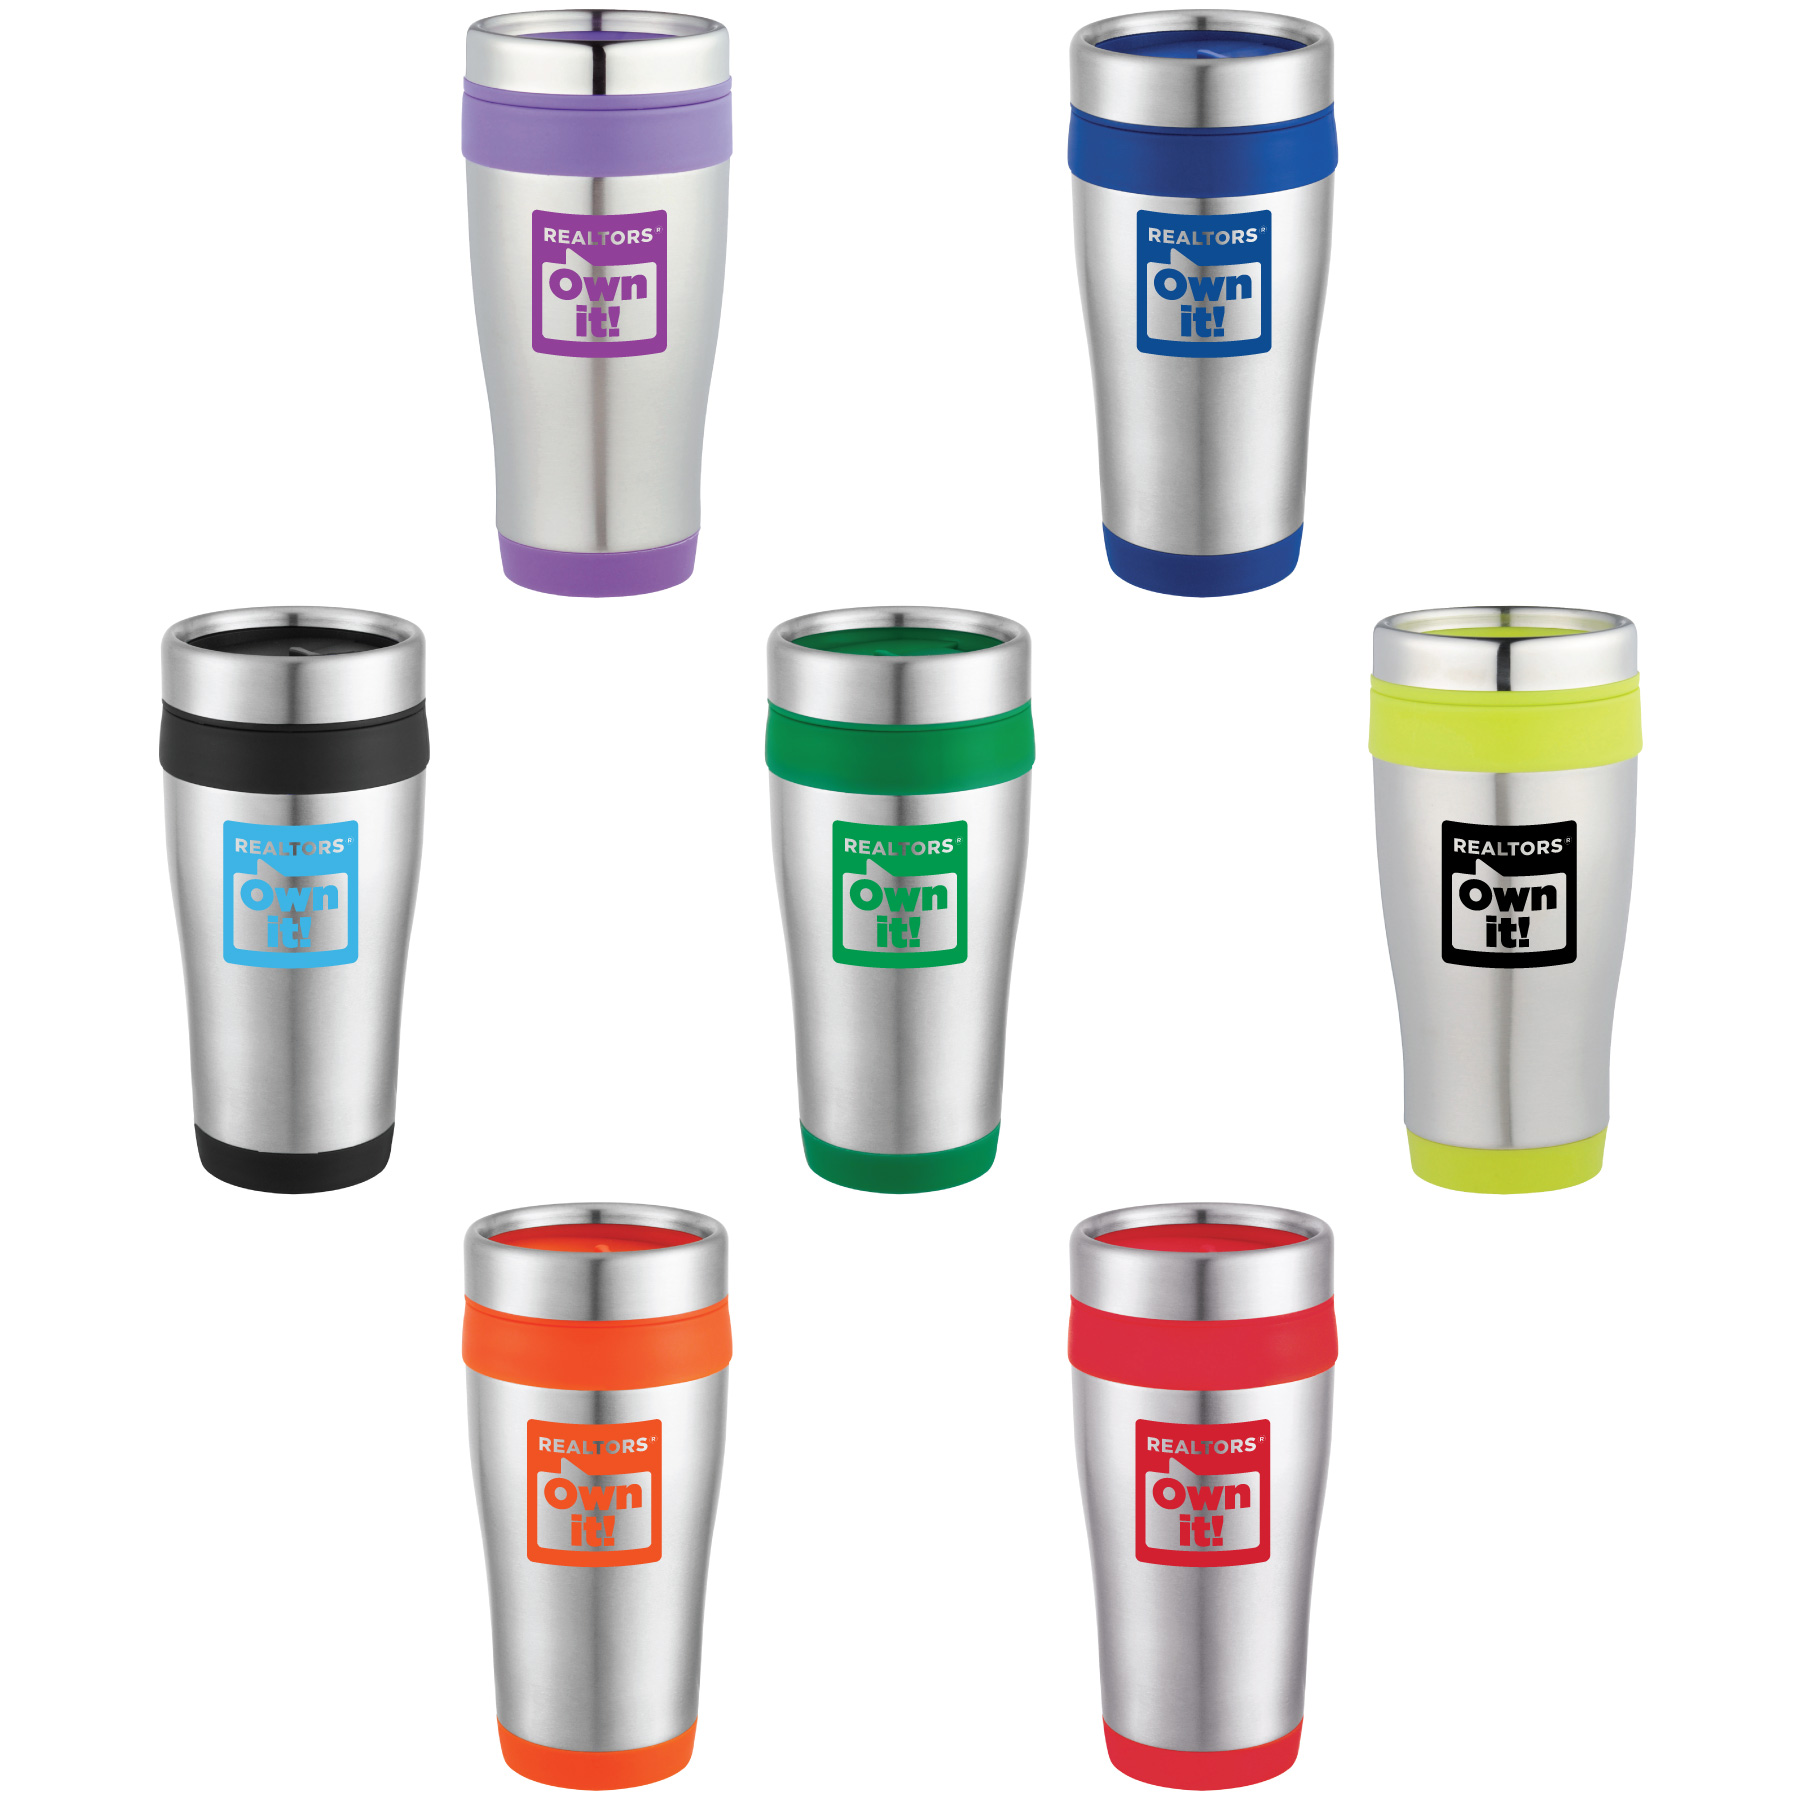 Simpson REALTORS® Own It! Travel Tumbler (Special Order) - RTS5136-ROI